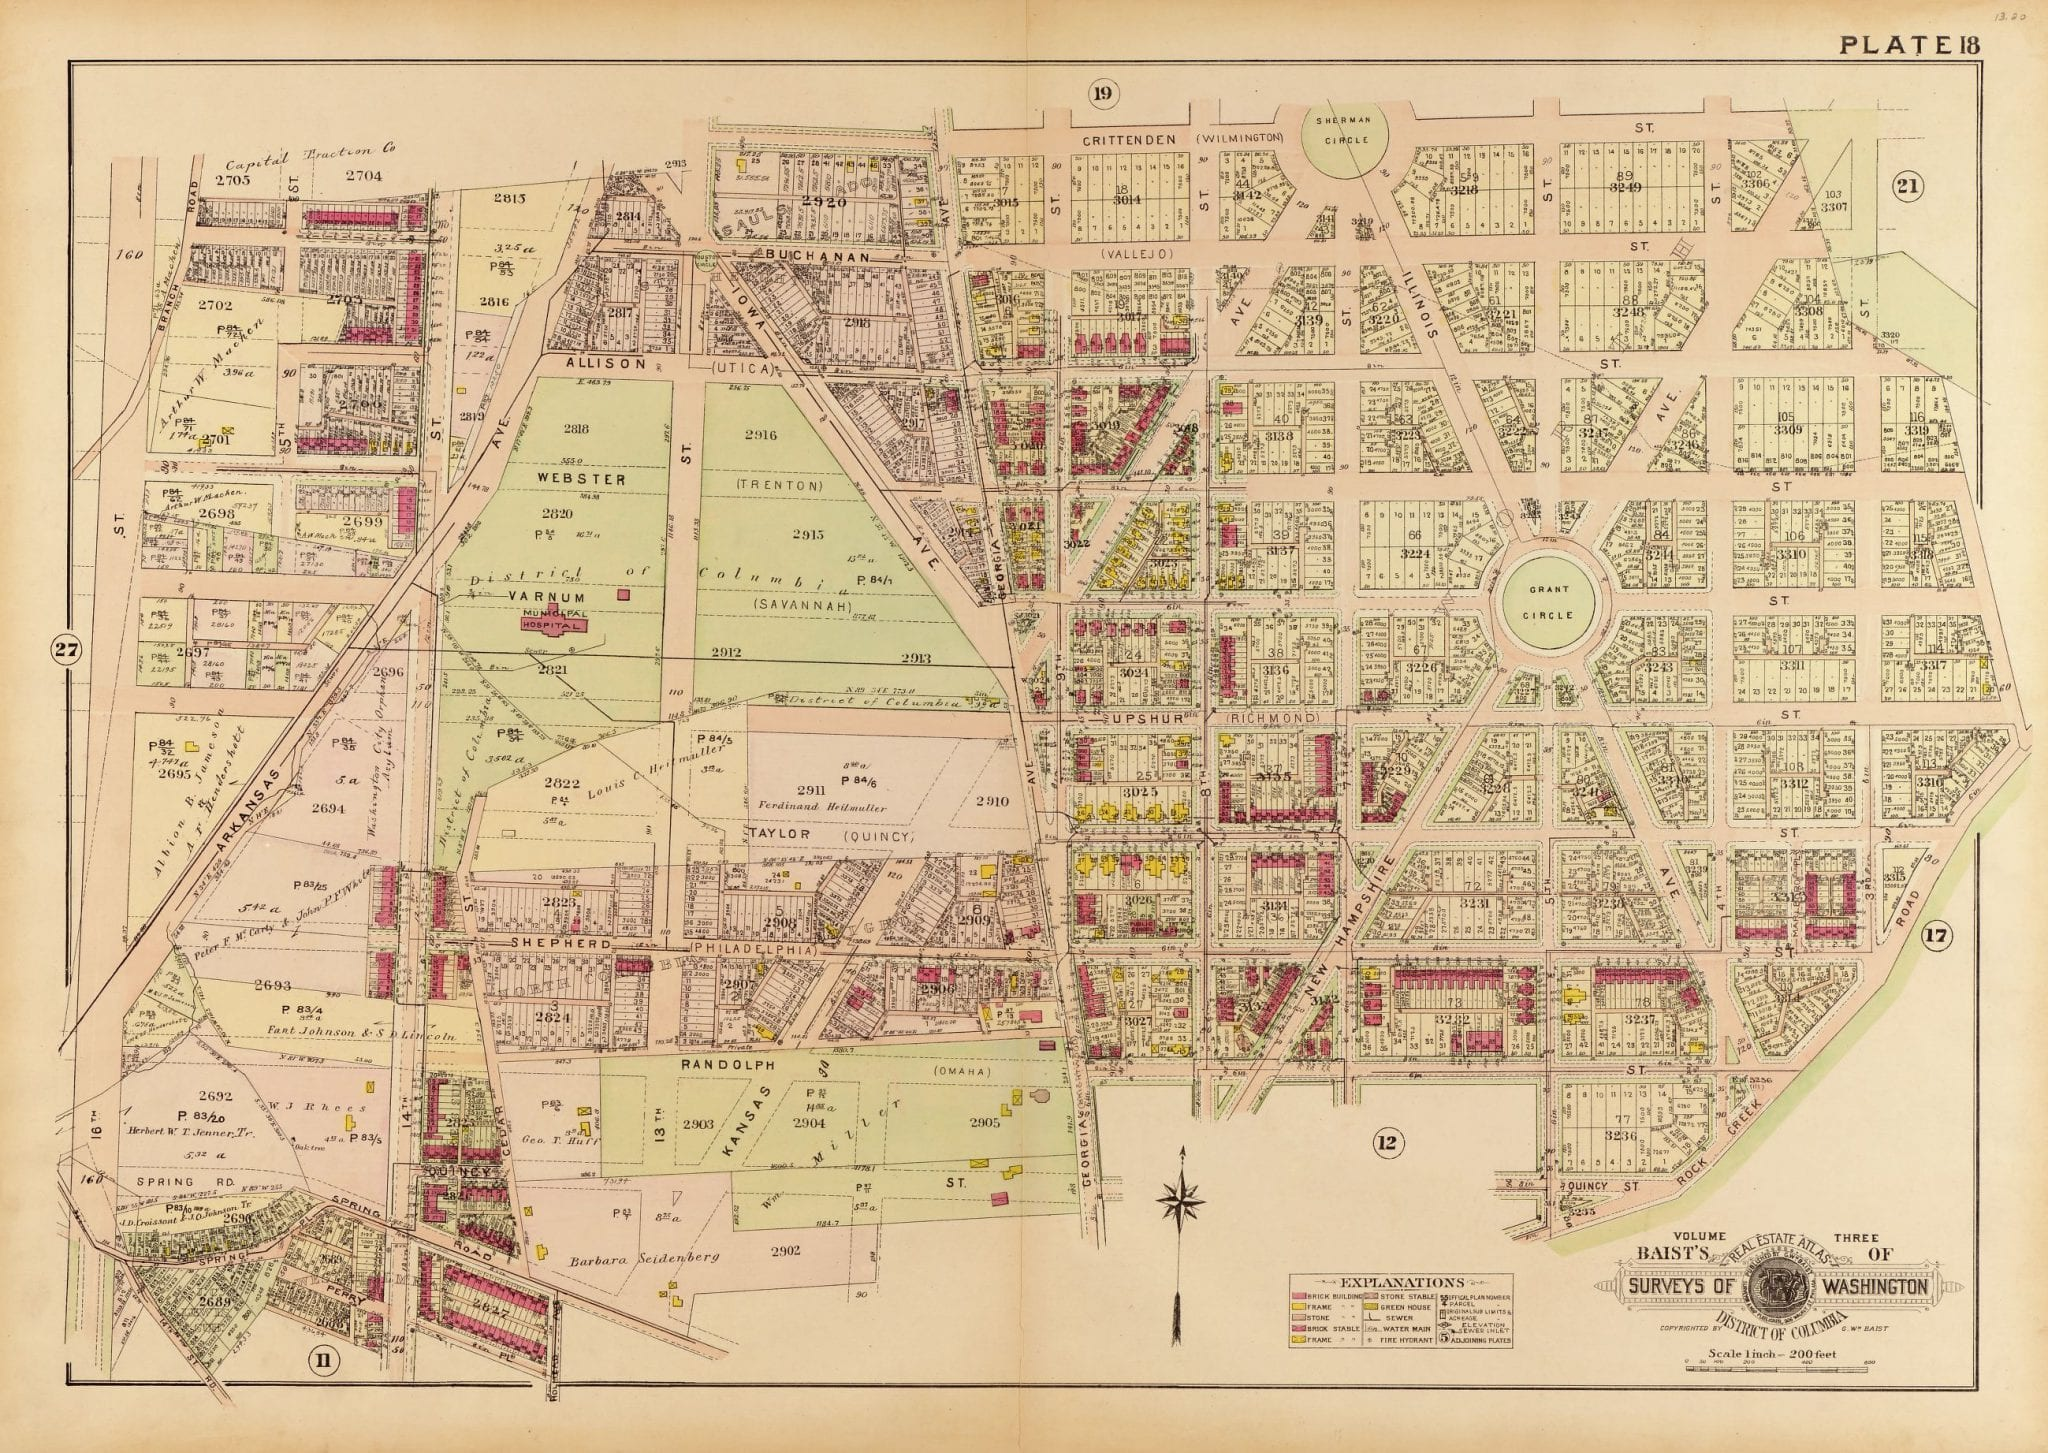 1909 map of Petworth